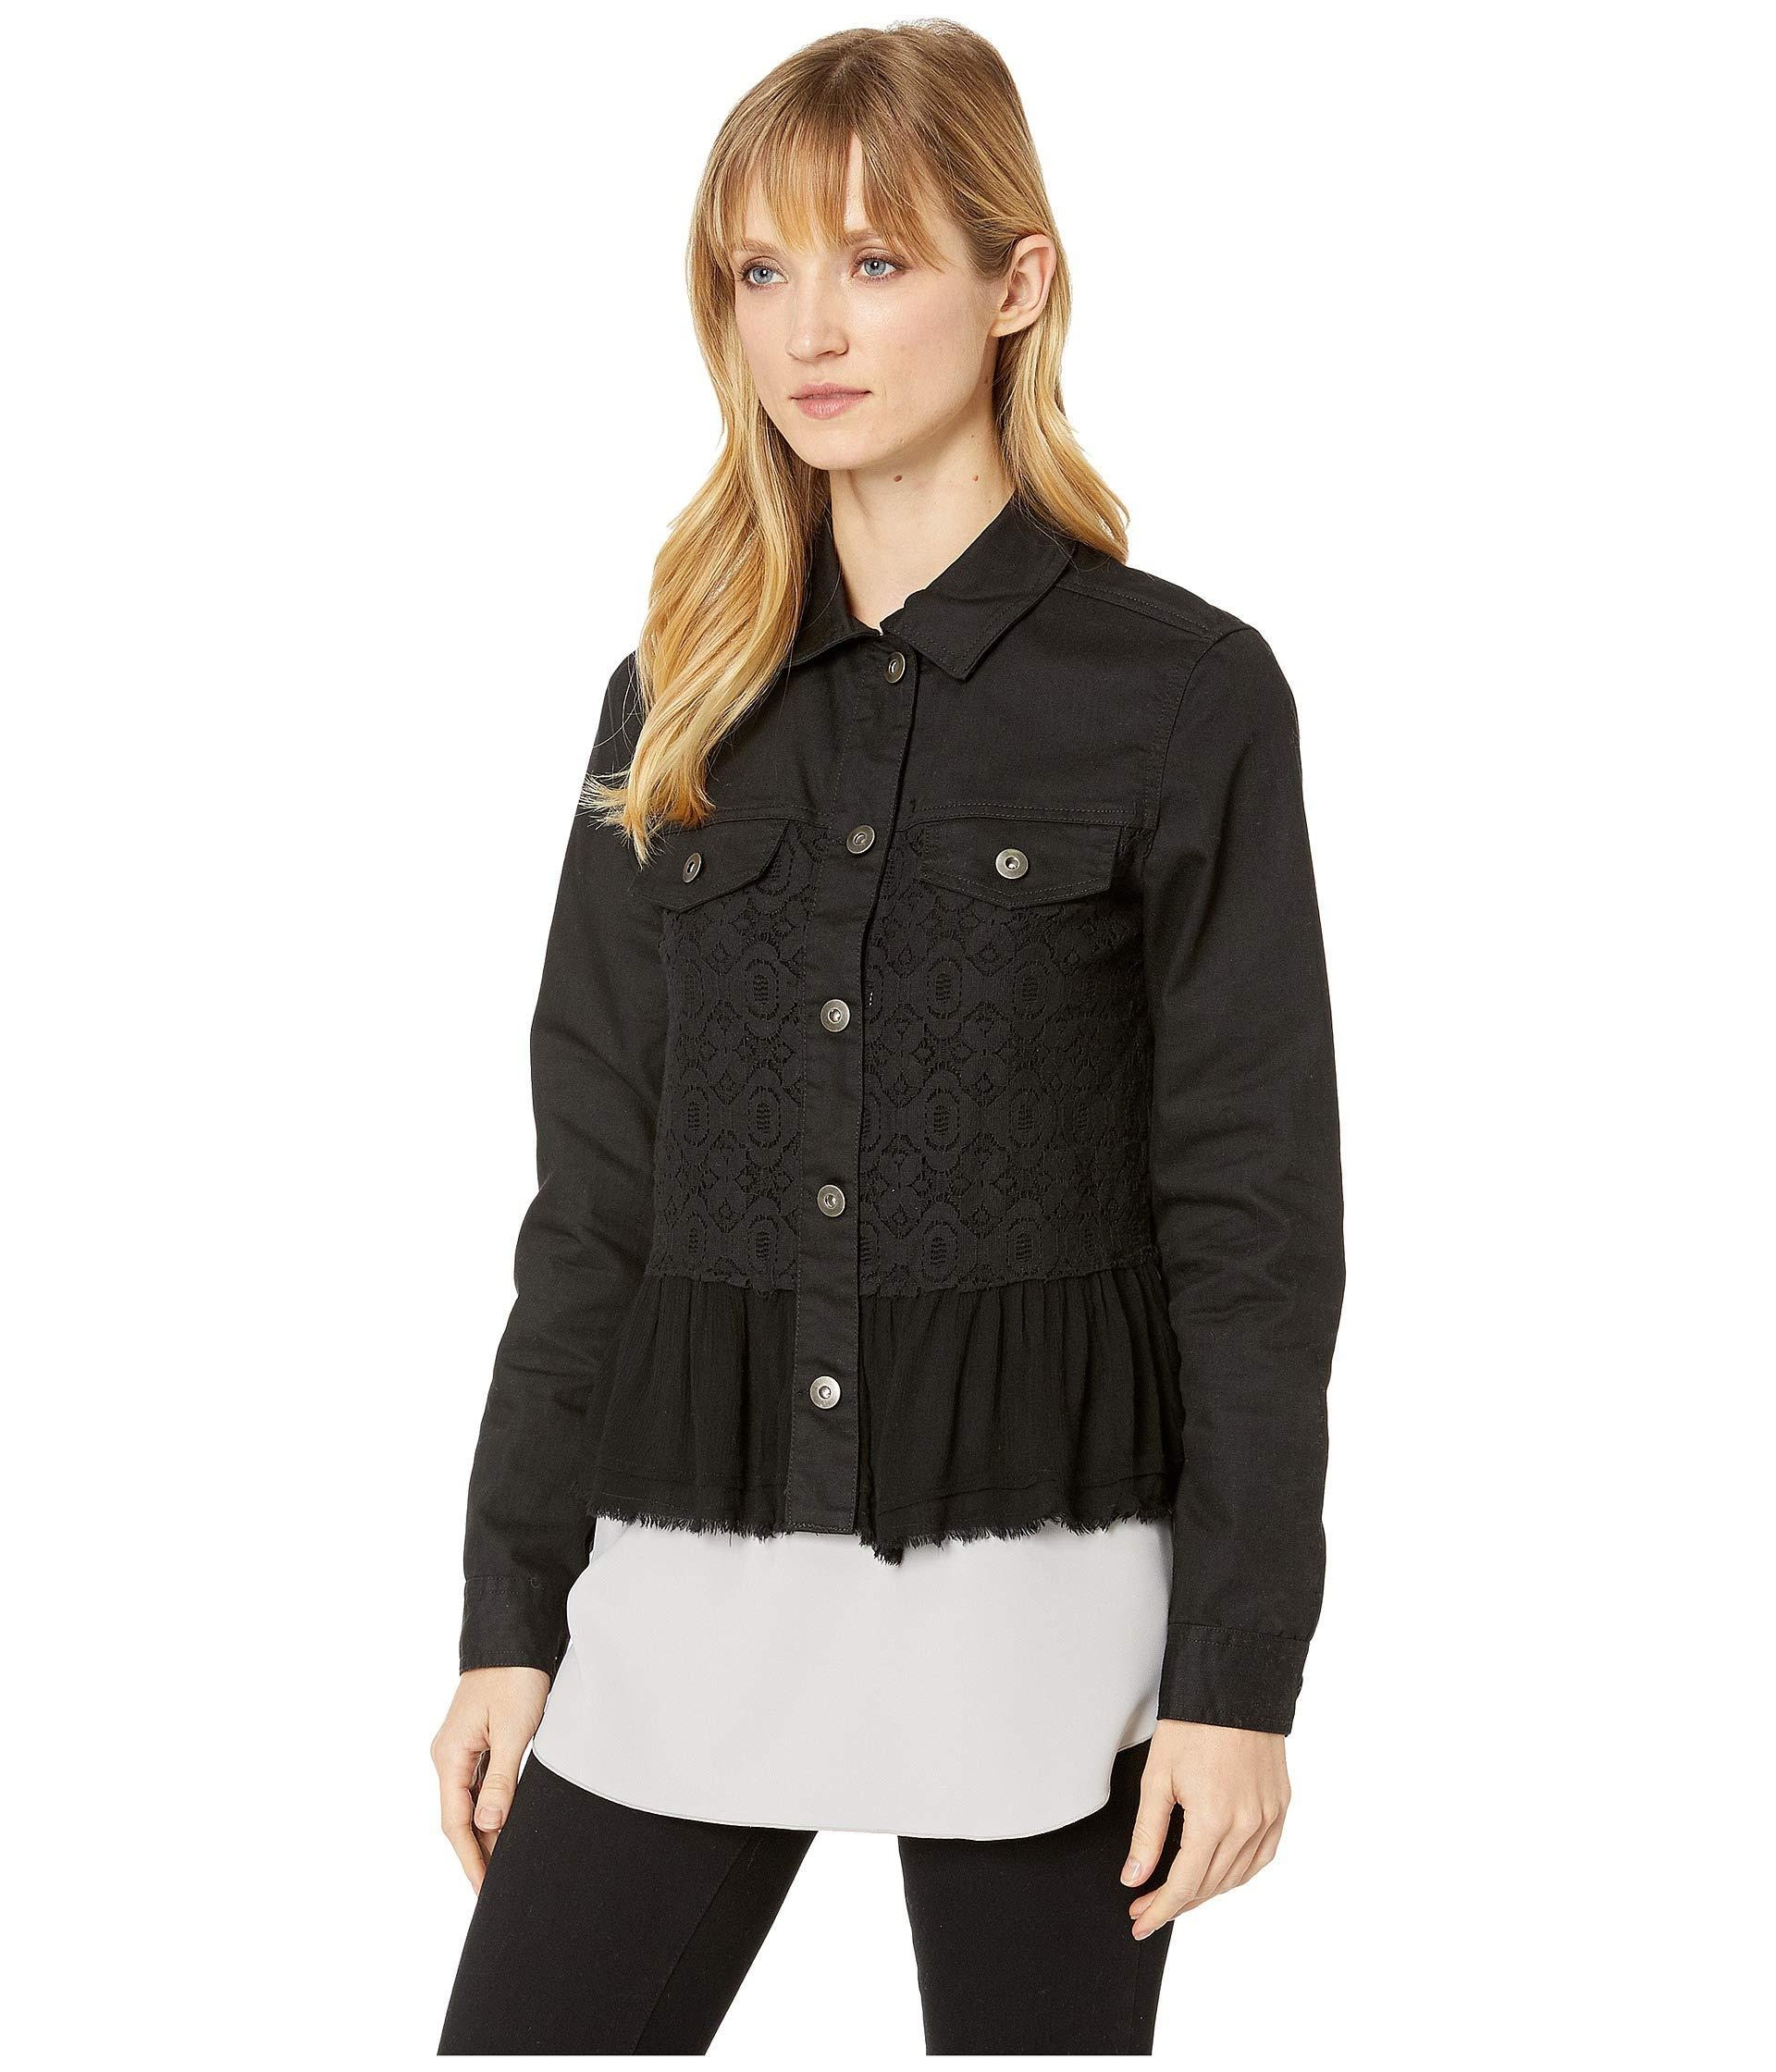 e09955b7ae122 Lyst - Scully Karter Denim And Lace Ruffle Jacket in Black - Save 7%